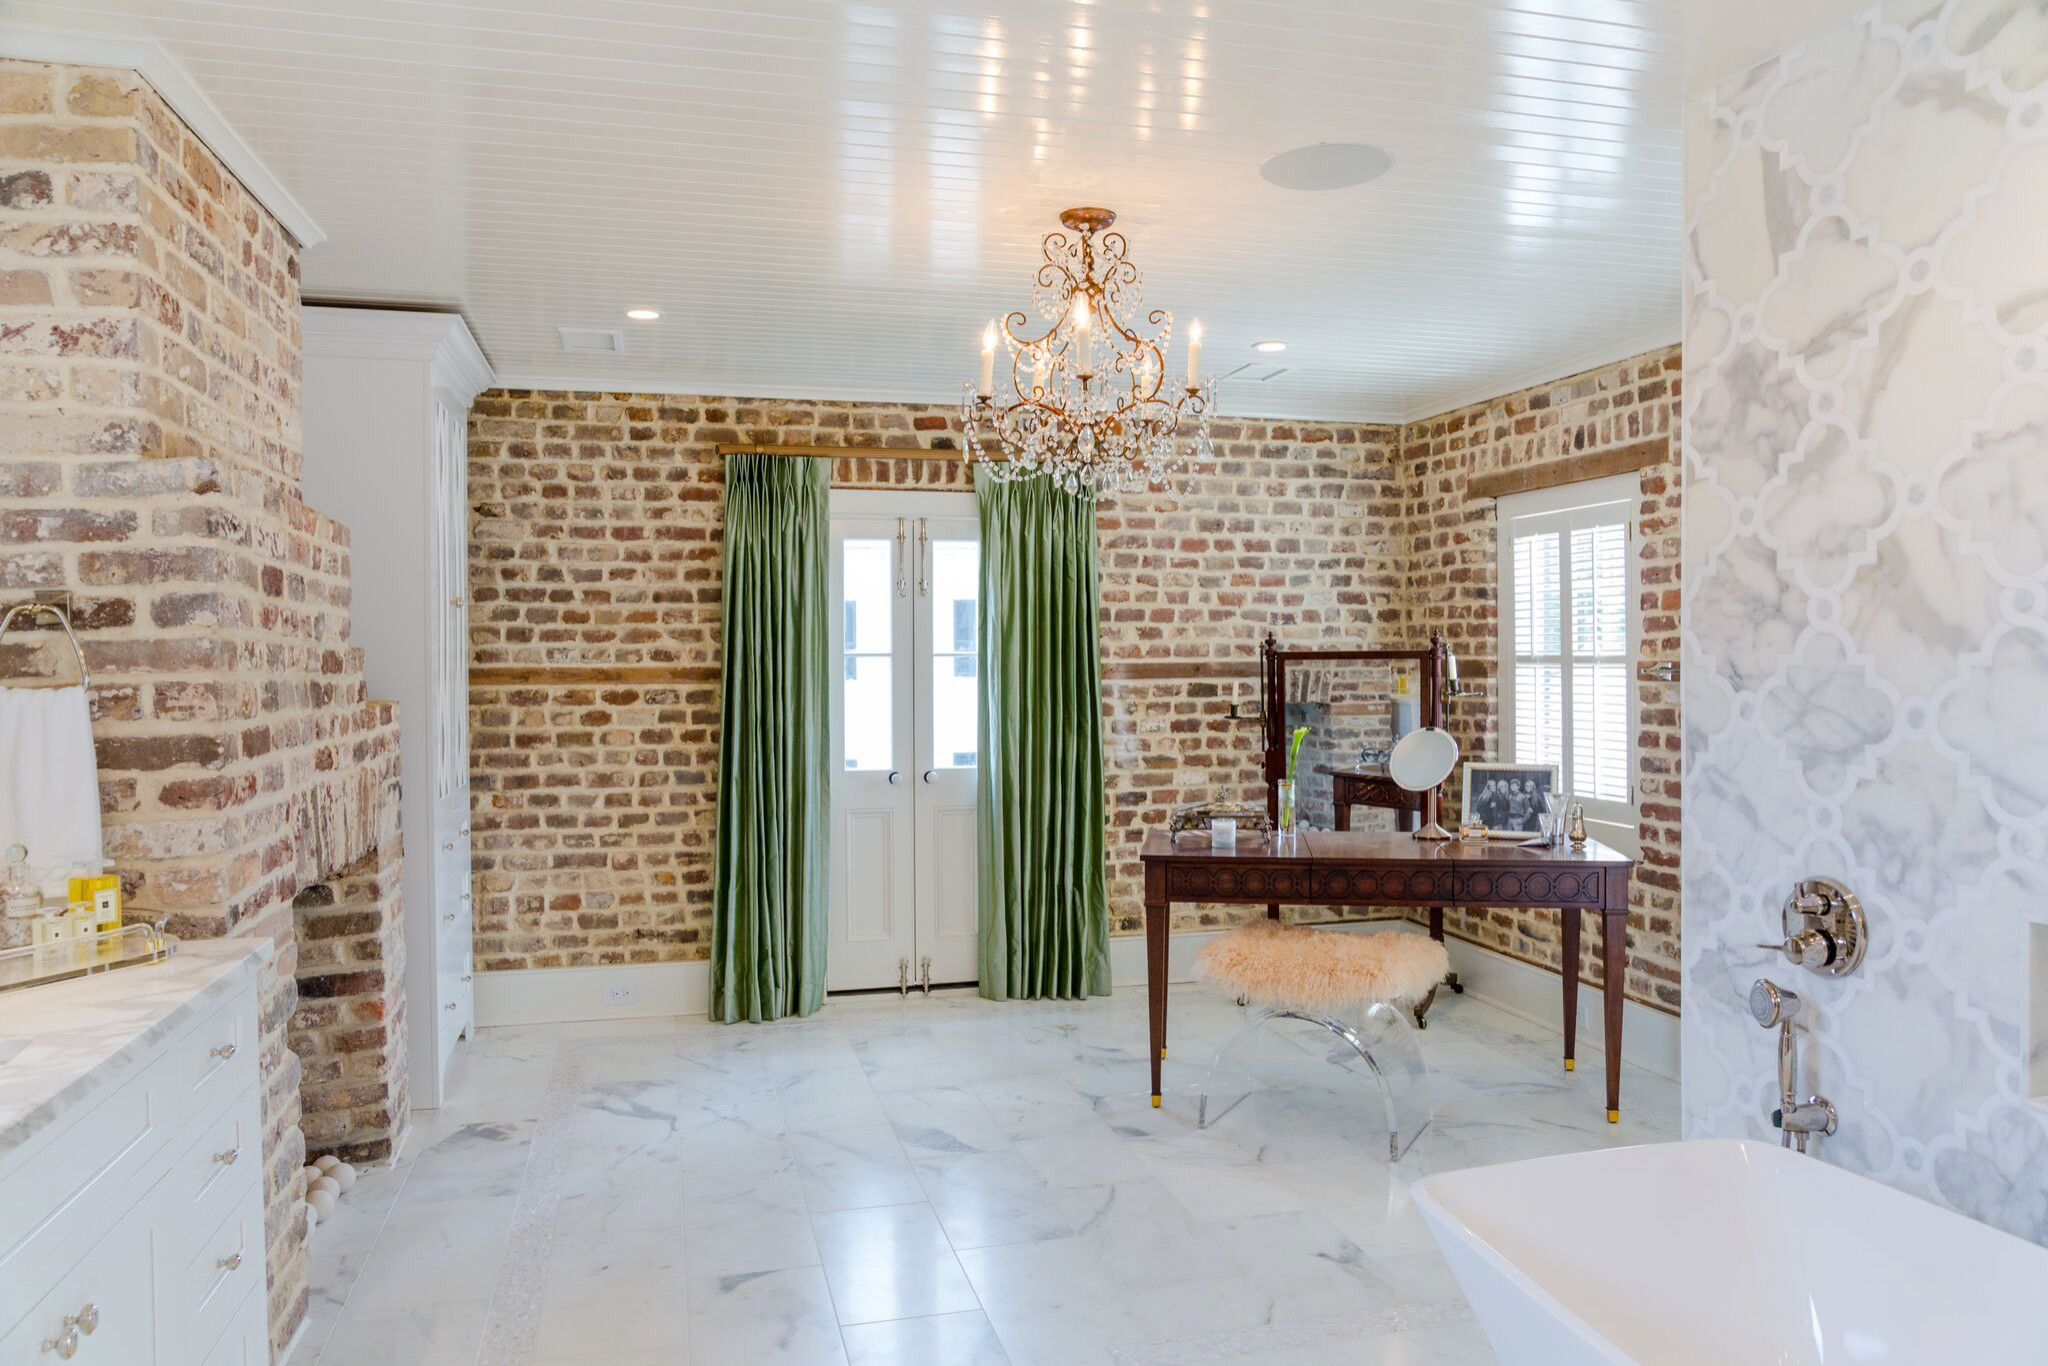 Luxe Master Bathroom in an Historic Home